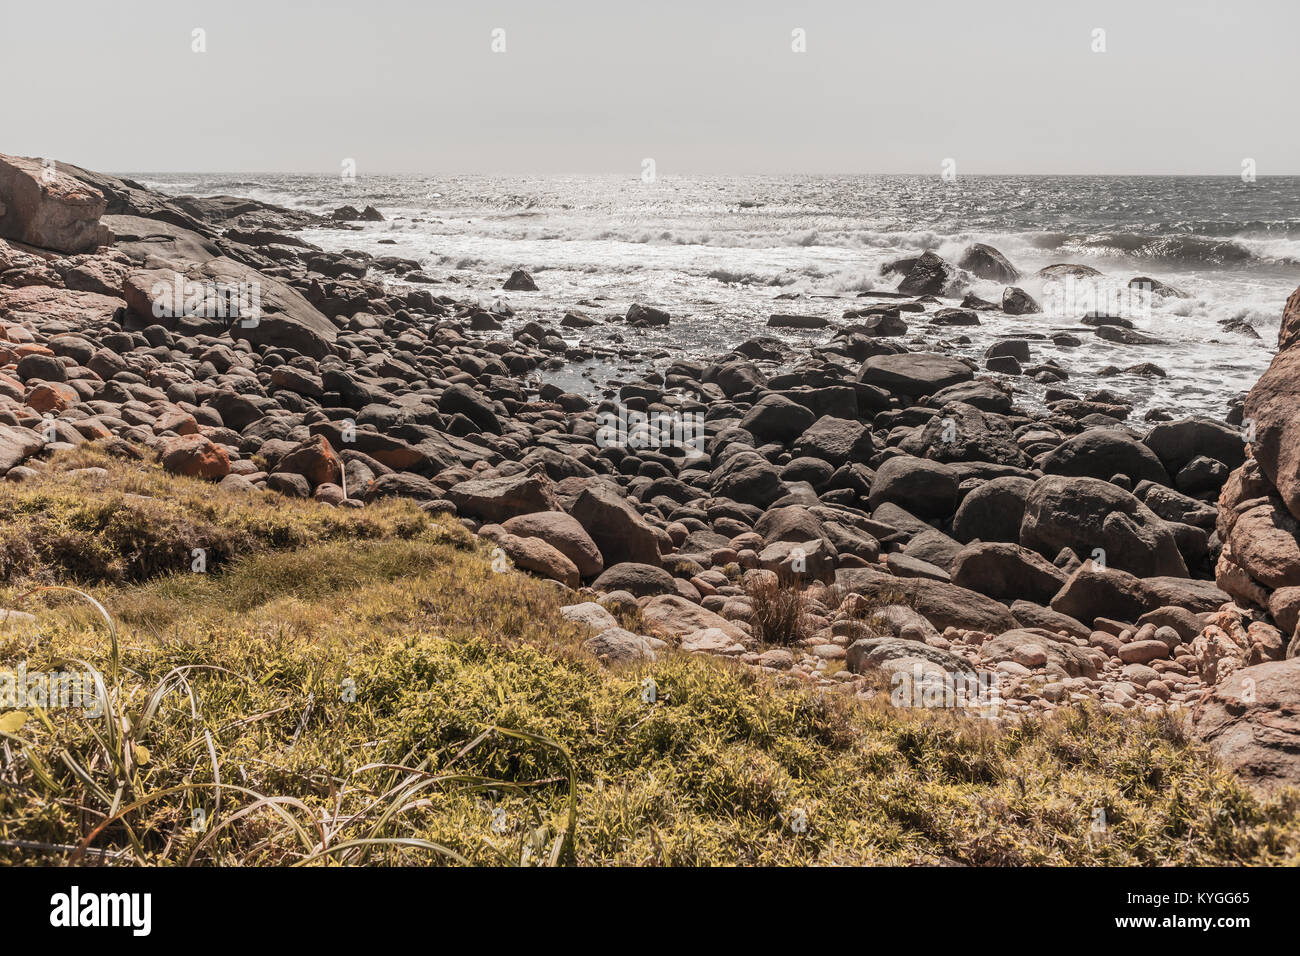 Rocky beach cove  ocean waves coastline summer  in vintage photo tones - Stock Image